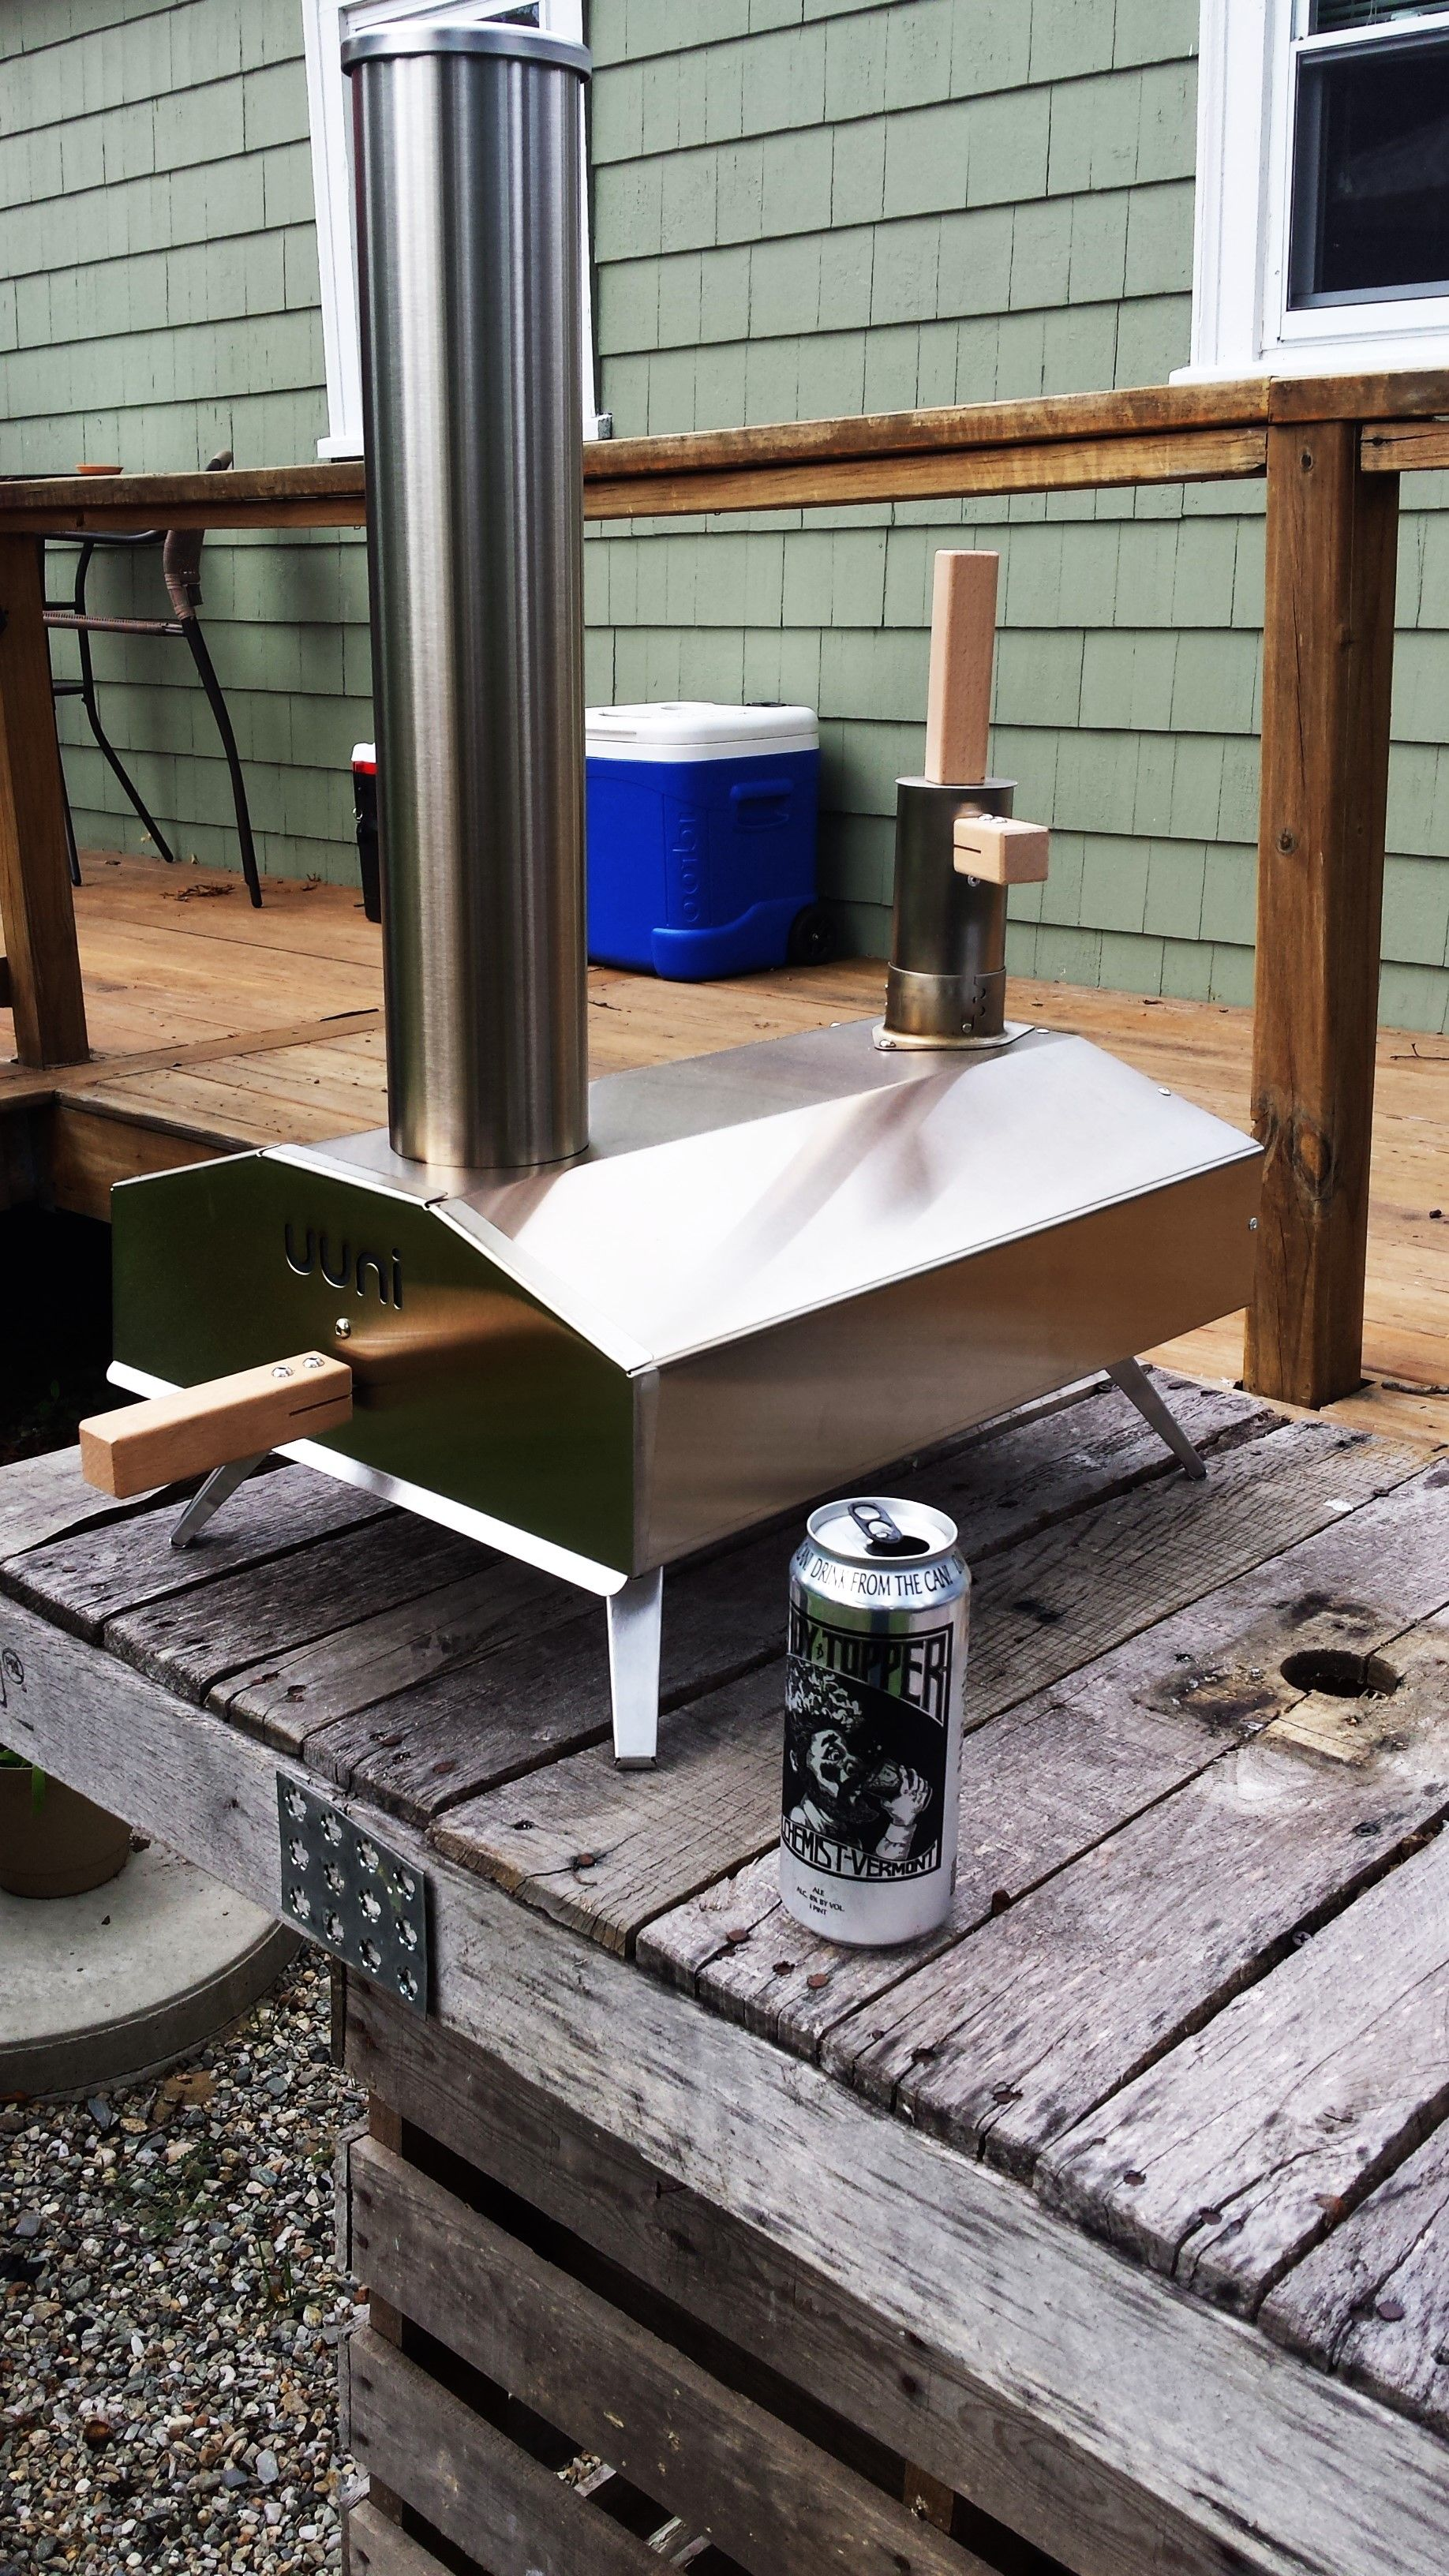 New addition to the outdoor kitchen this thing is going to get a